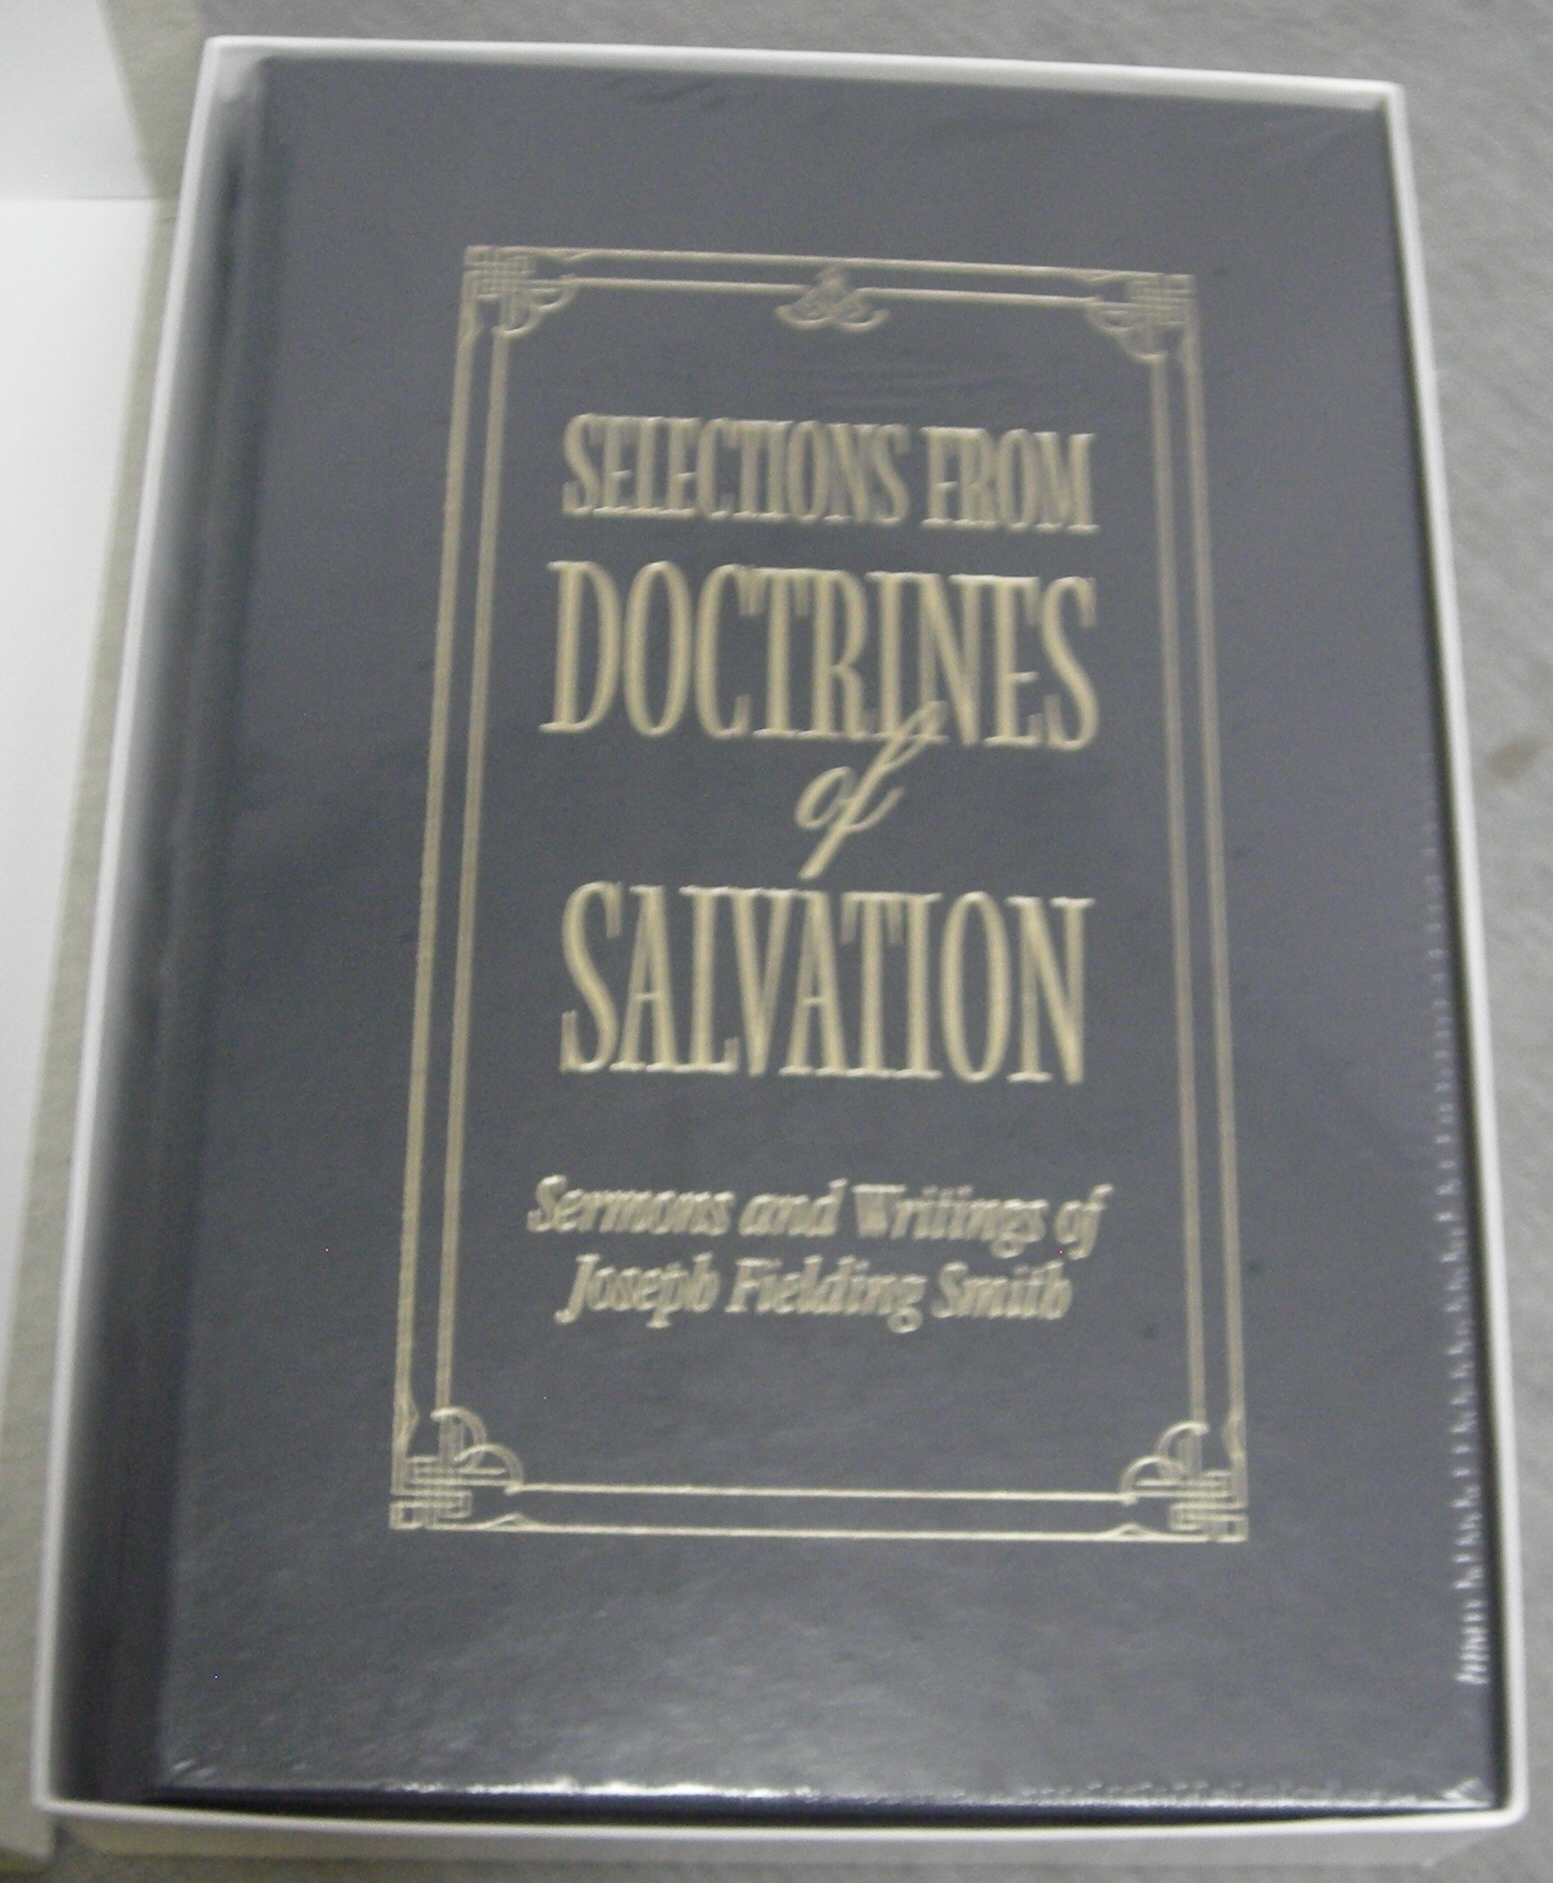 Selections from Doctrines of Salvation - Leather -  Sermons and Writings of Joseph Fielding Smith, Smith, Joseph Fielding